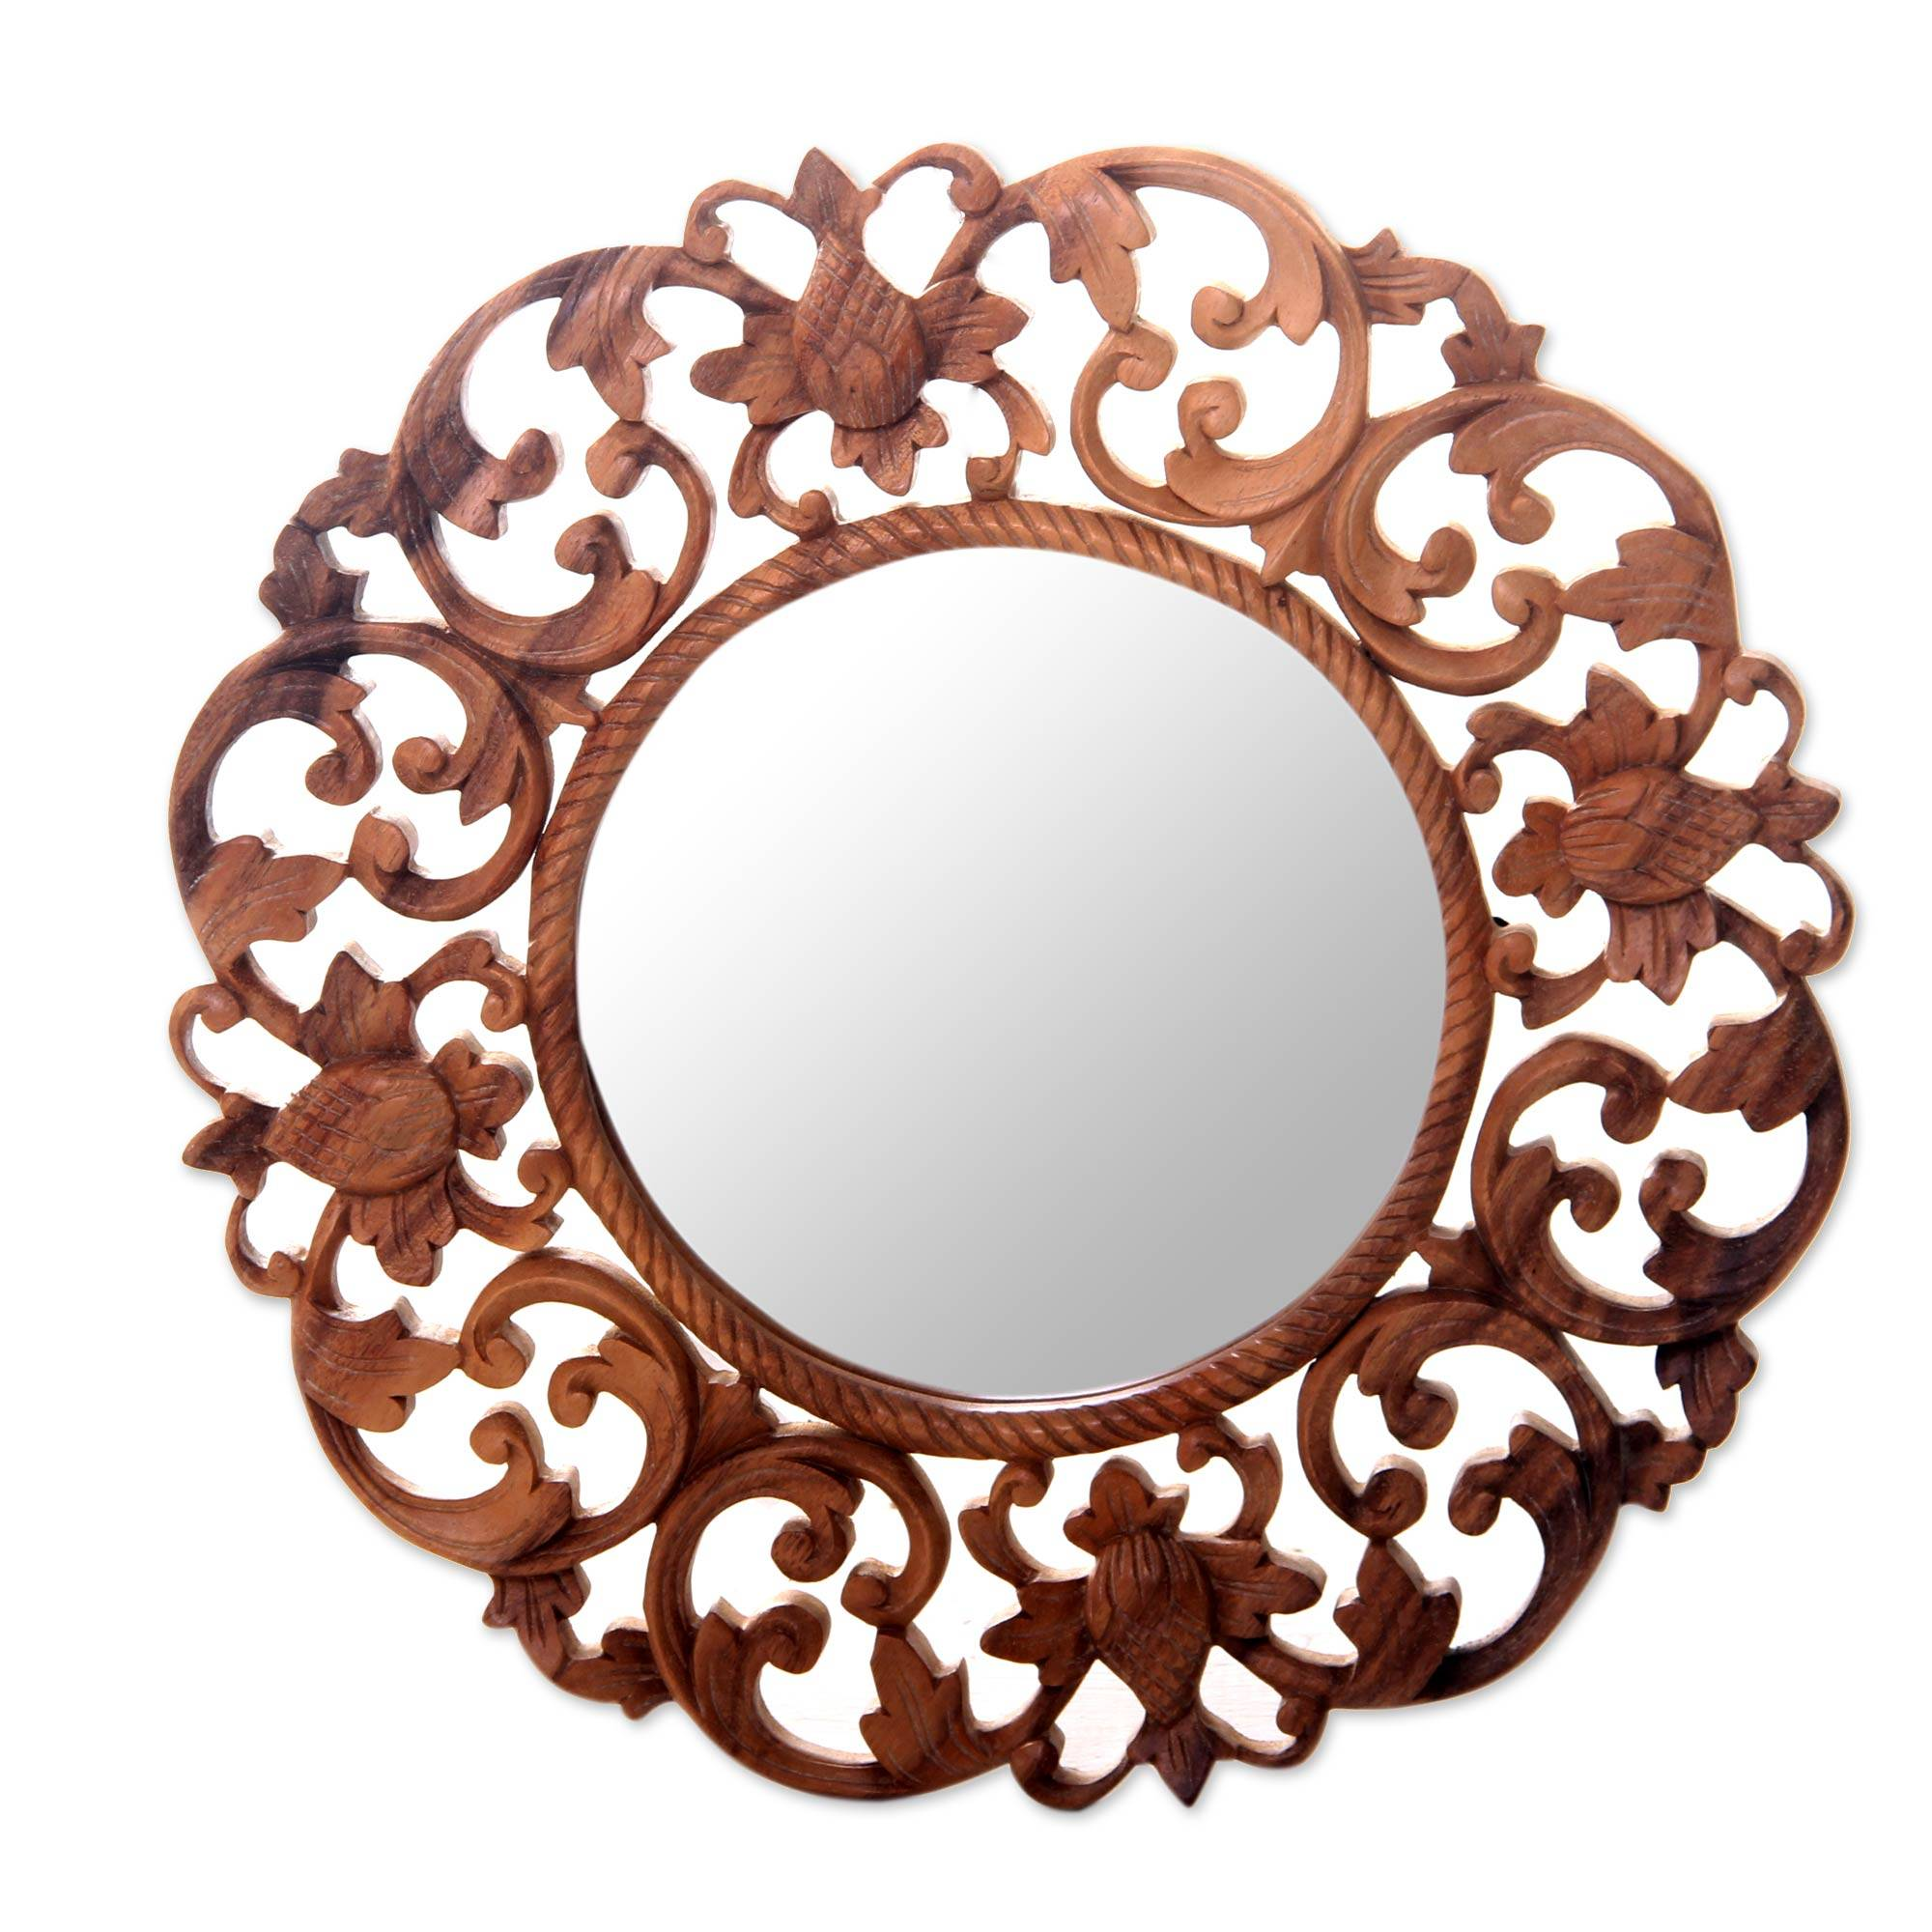 This italian circular wooden wall mirror is no longer available - Wood Wall Mirror Balsamina Buds Round Floral Carved Suar Wood Wall Mirror